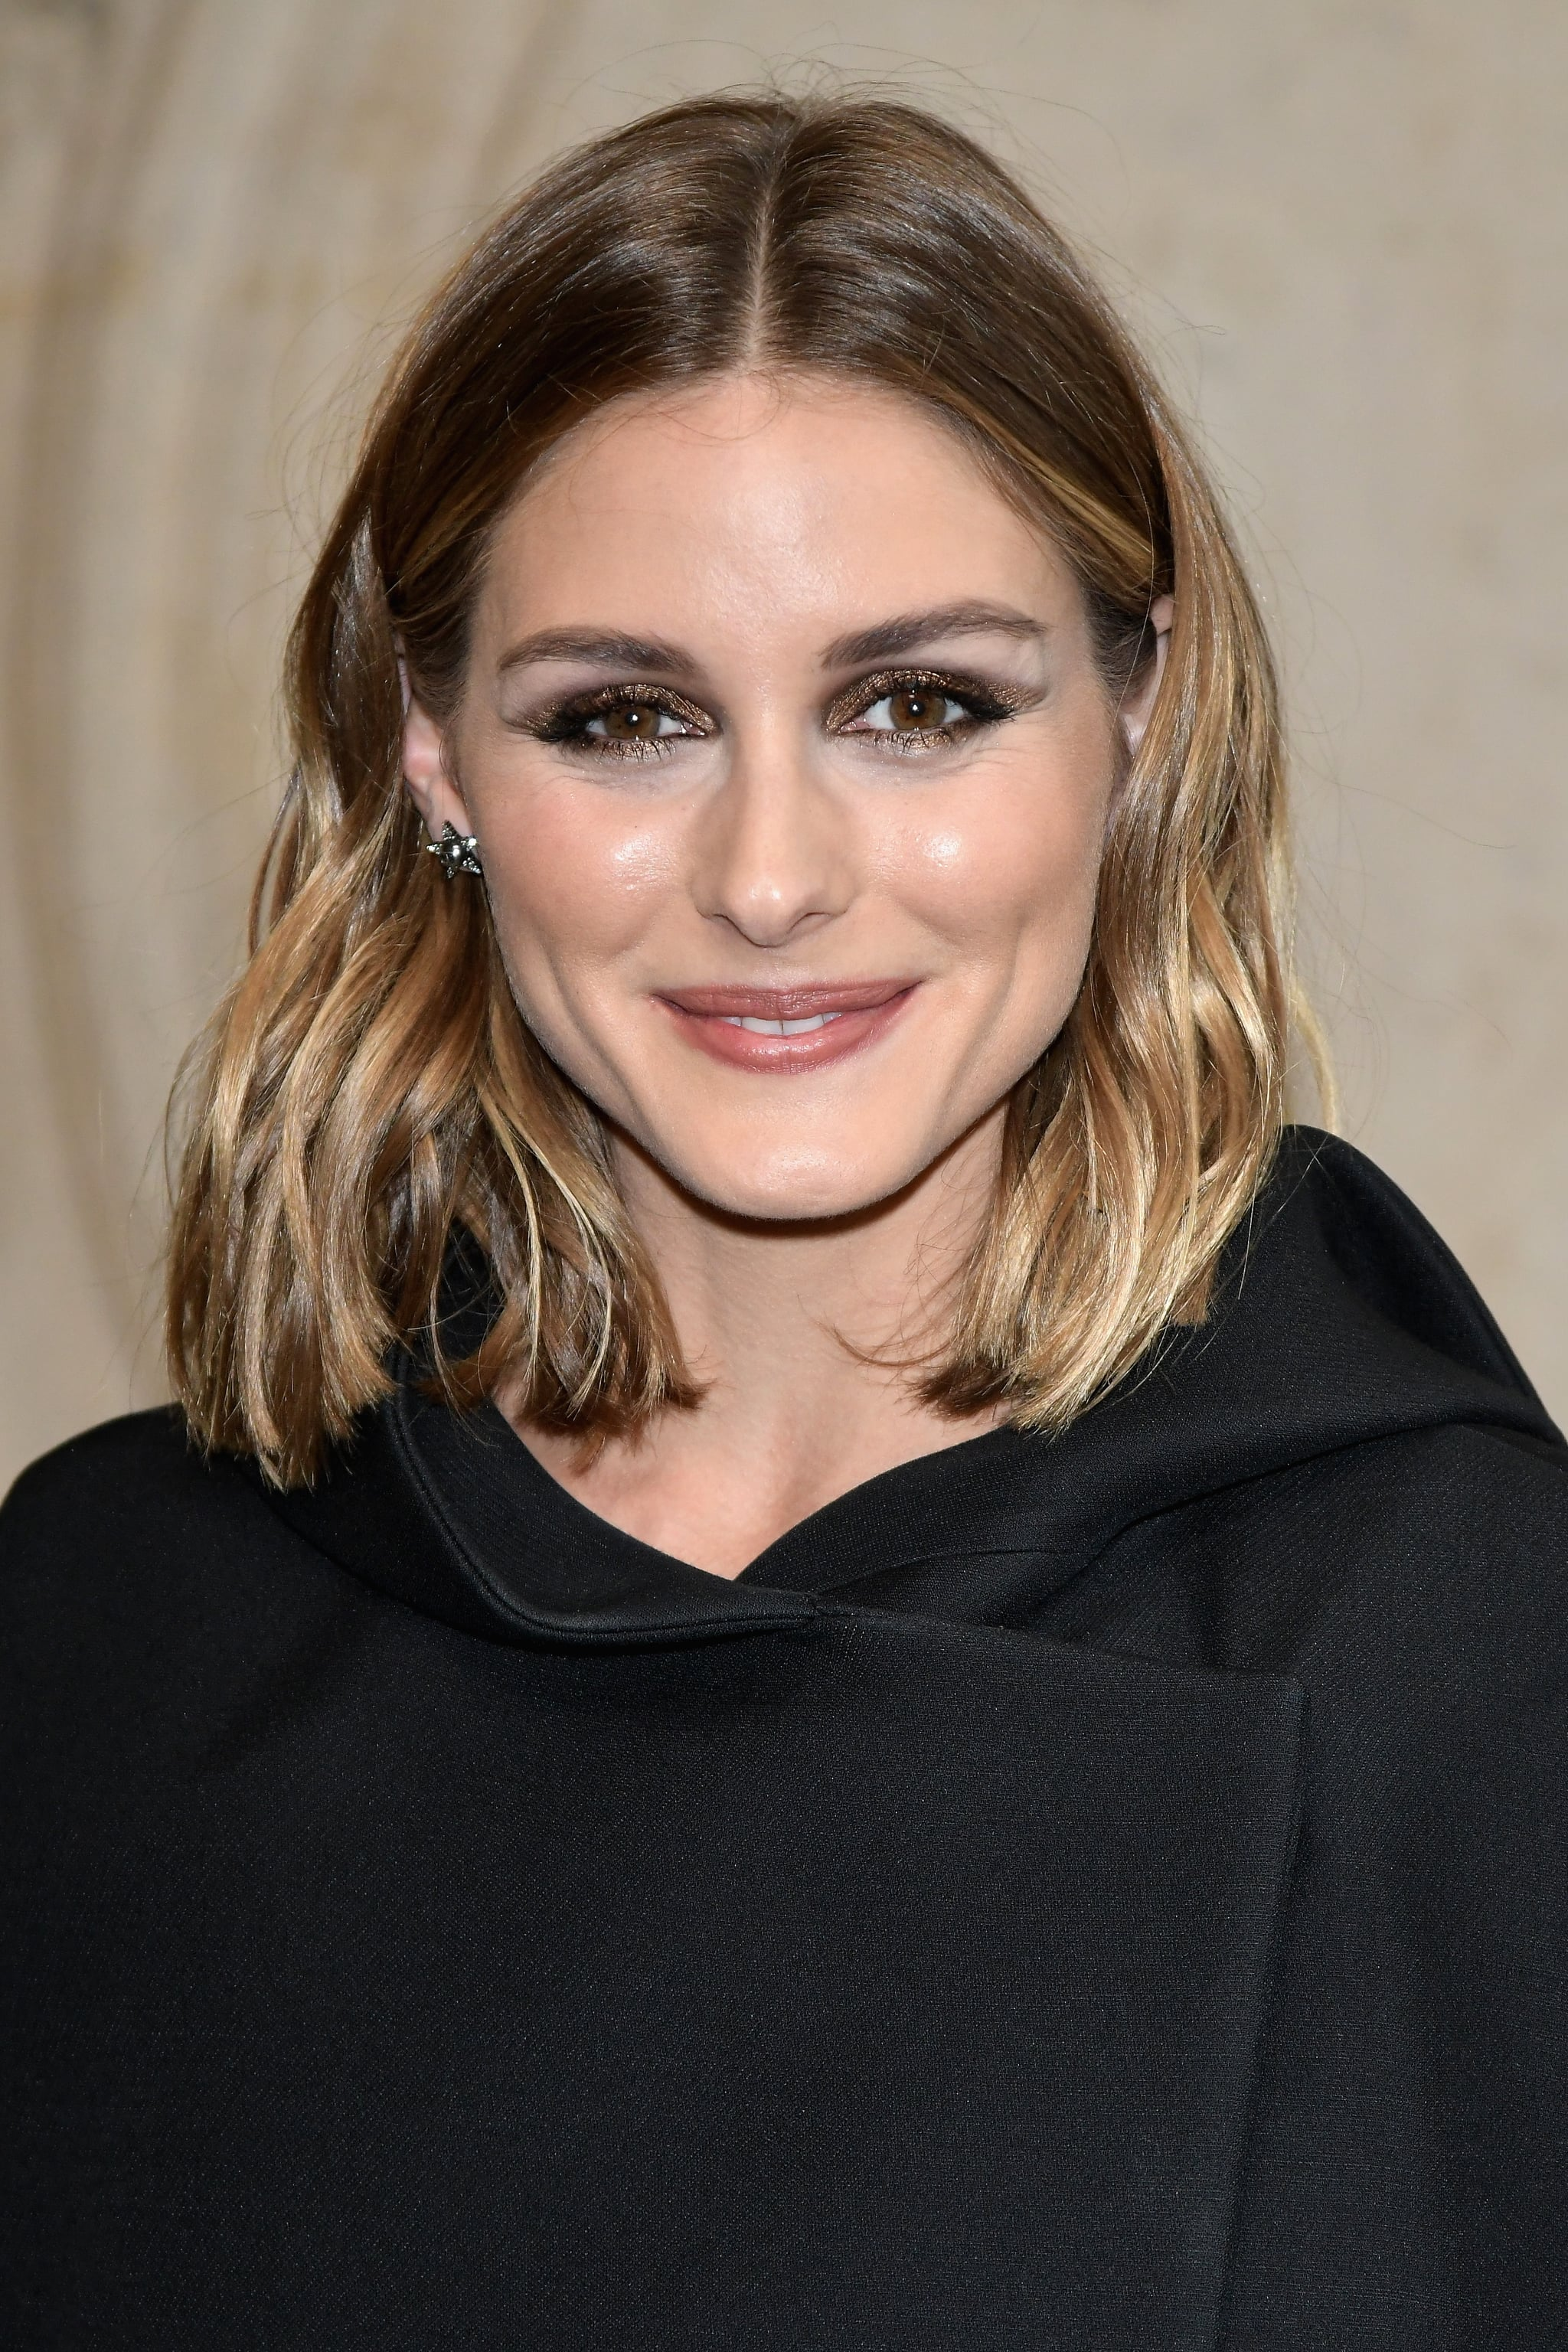 Olivia Palermo 28 New Midlength Looks To Inspire Your Next Haircut Popsugar Beauty Middle East Photo 13